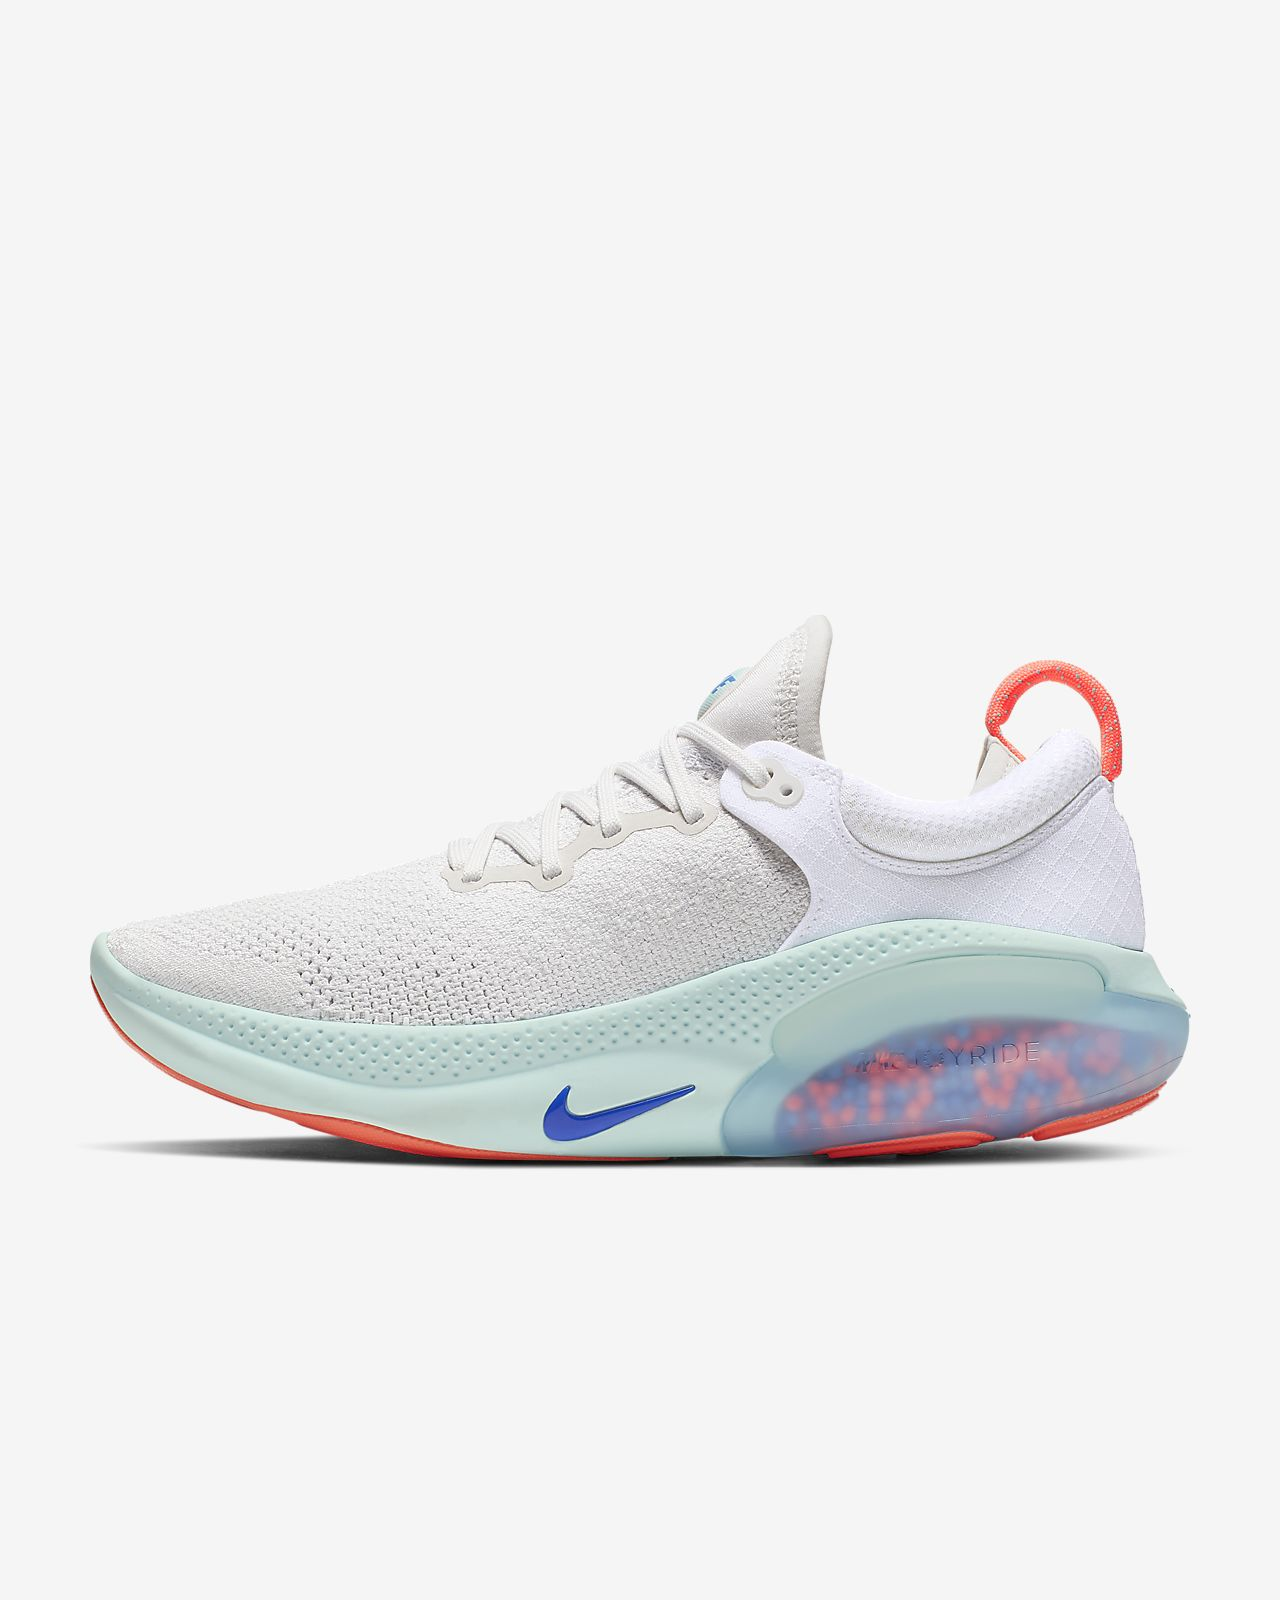 Nike Joyride Run Flyknit Women's Running Shoe